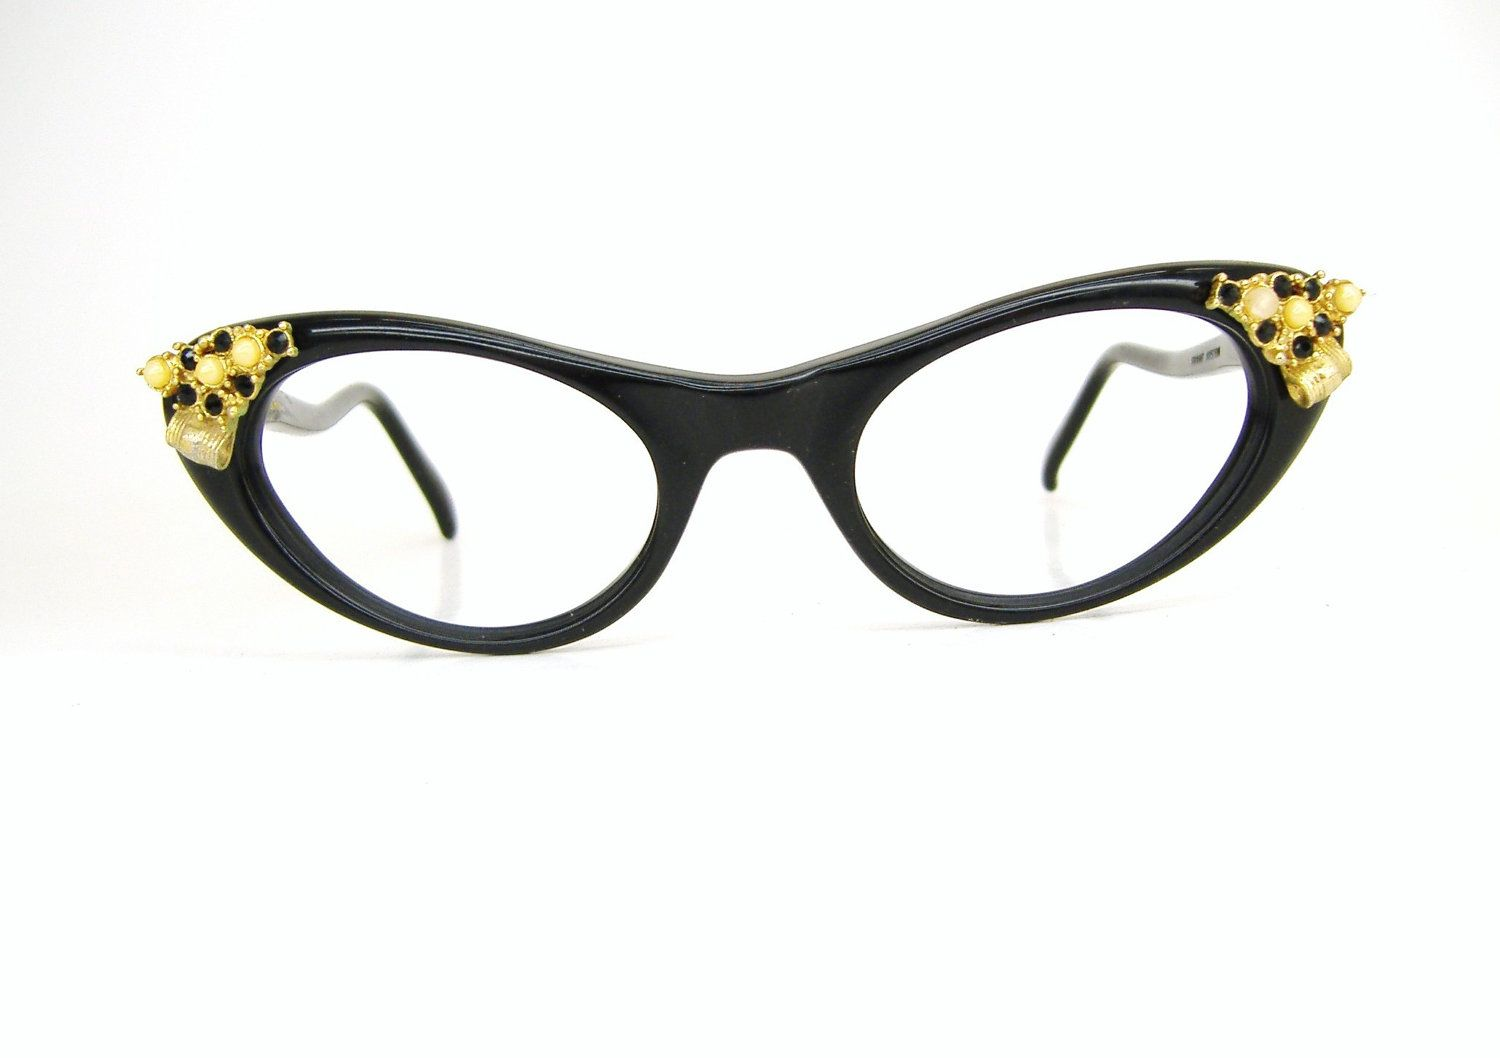 34c680fa8e4a Rare Vintage Cat Eye Christian Dior Blue Eyeglasses Frame Never Worn ...